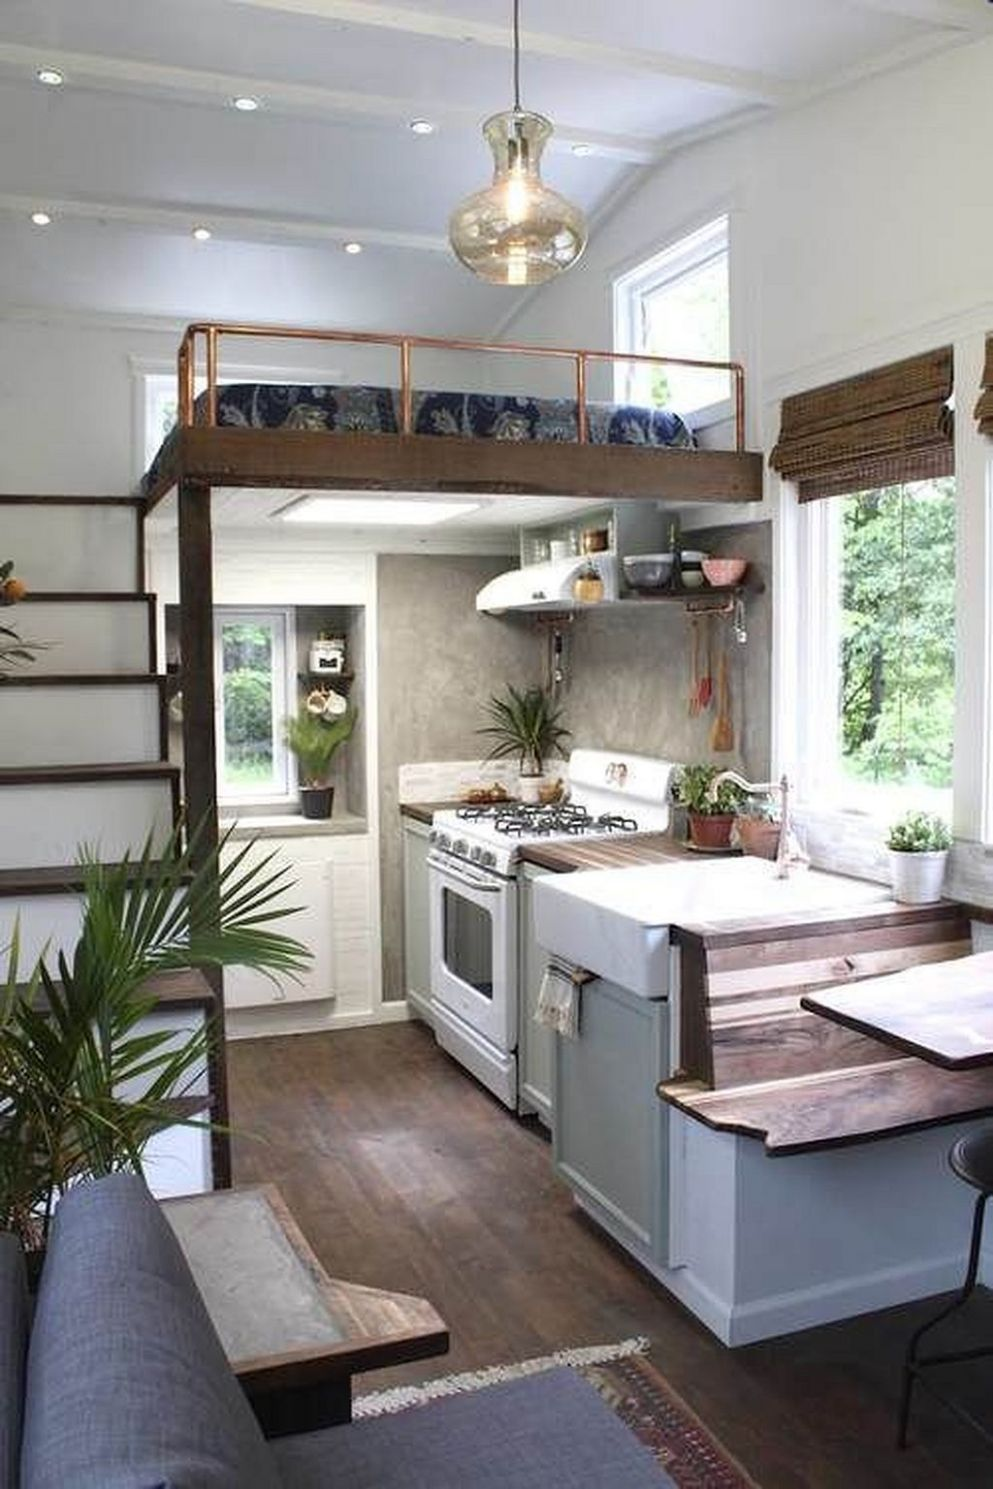 11 Tiny House Hacks: Modern and Larger Look   Tiny house ..